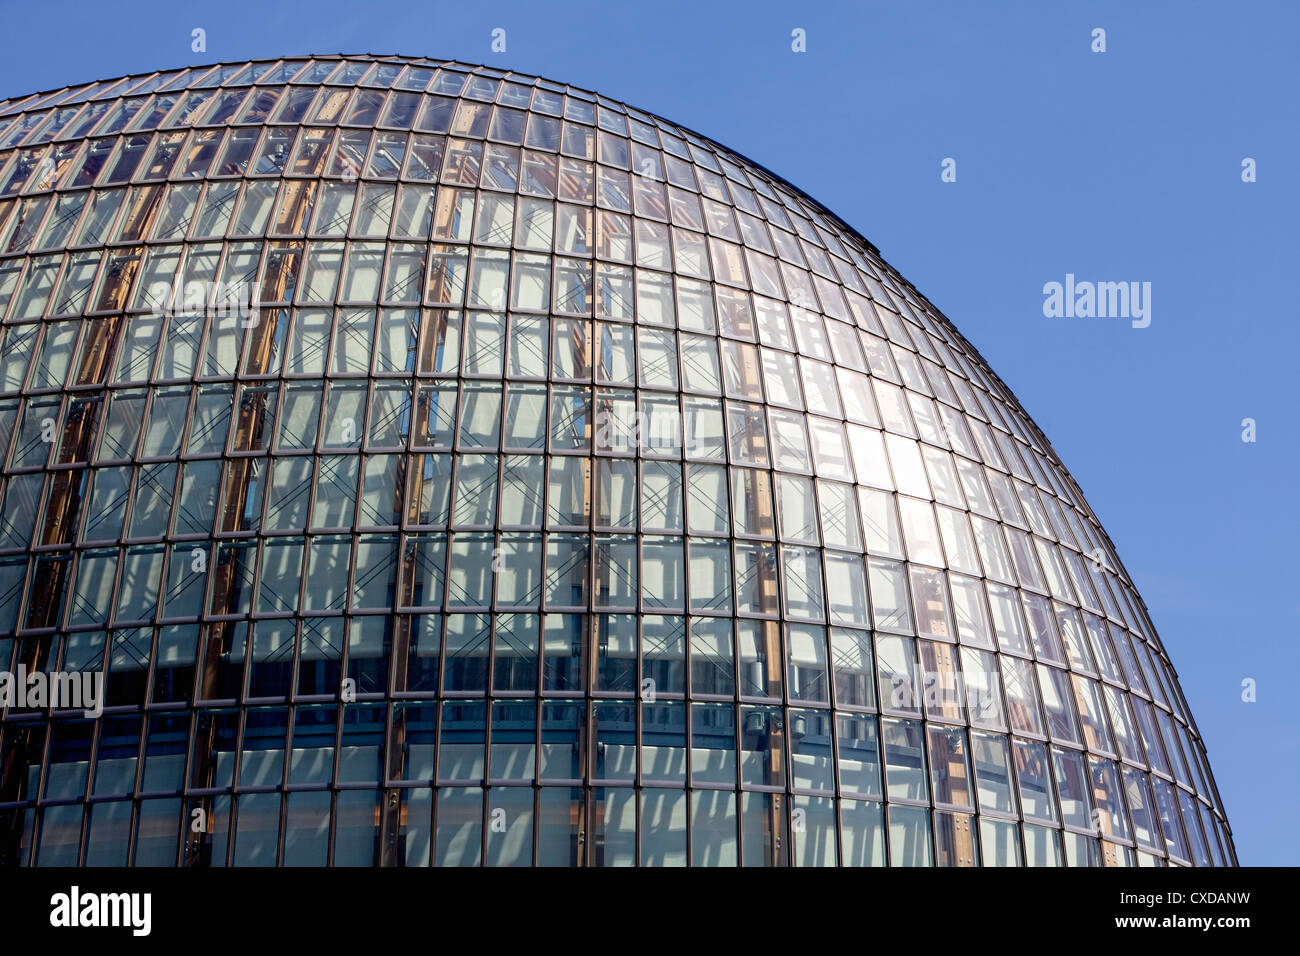 Weltstadthaus with a glass facade by the architect Renzo Piano, Schildergasse street, Cologne, North Rhine-Westphalia, - Stock Image